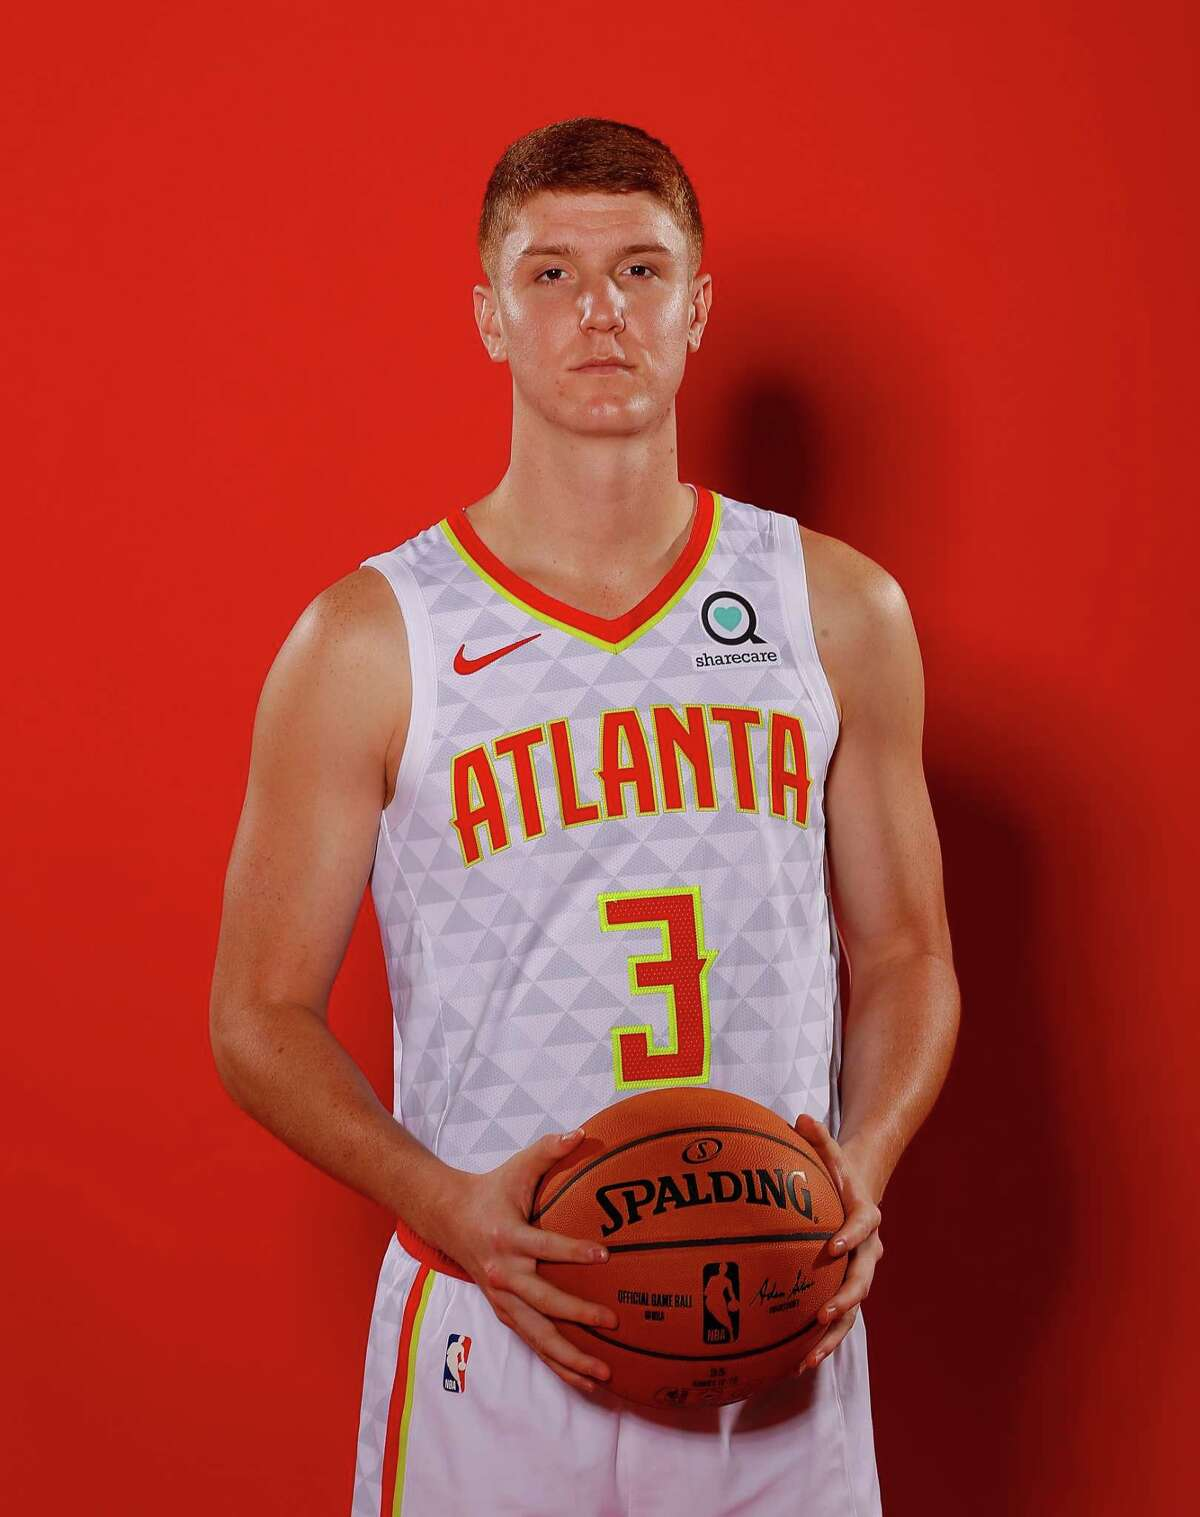 ATLANTA, GEORGIA - SEPTEMBER 30: Kevin Huerter #3 of the Atlanta Hawks poses for portraits during media day at Emory Sports Medicine Complex on September 30, 2019 in Atlanta, Georgia. (Photo by Kevin C. Cox/Getty Images)